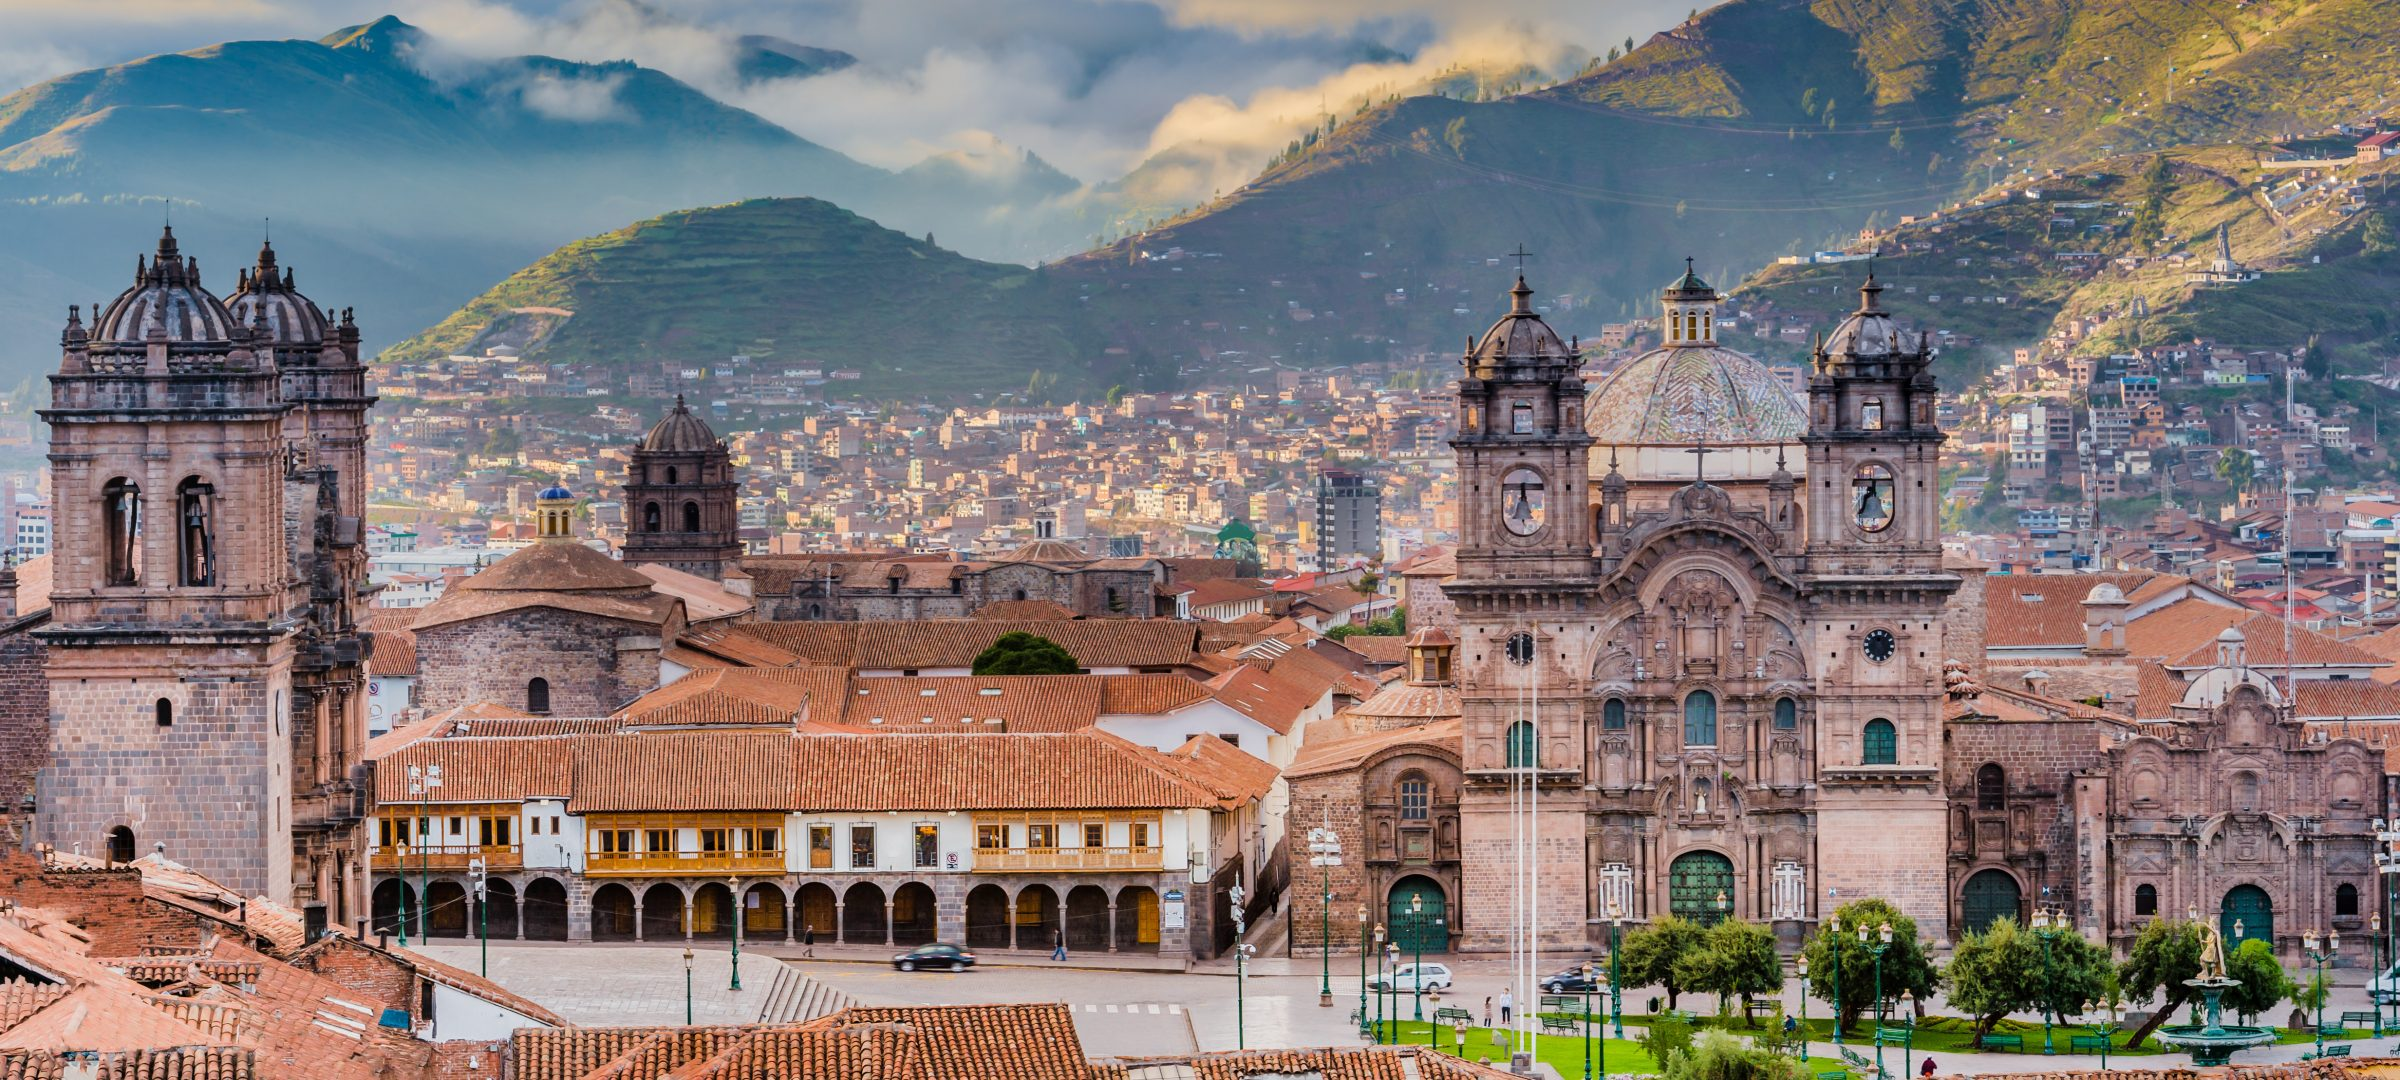 The historic city Cusco in the Andes, Peru, offers many green highlights for a sustainable city trip.